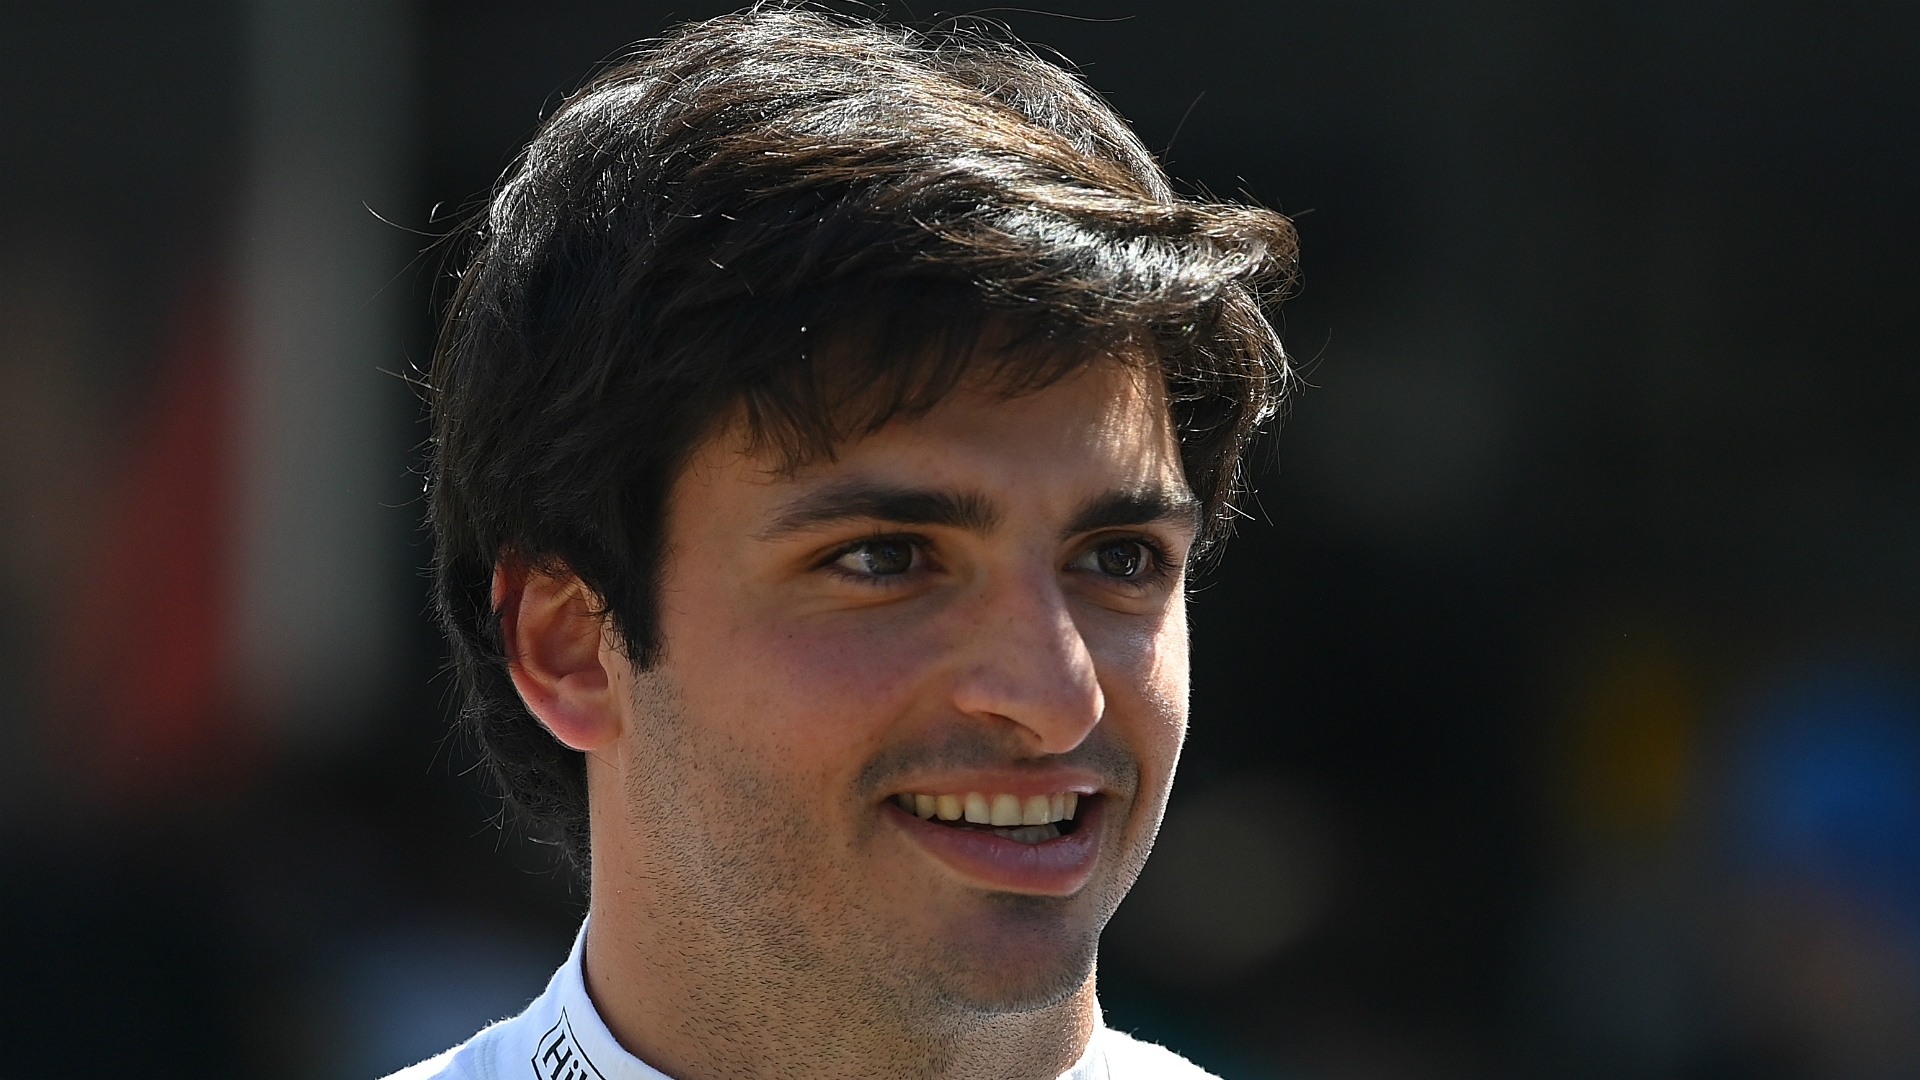 Sainz: I haven't joined Ferrari as second driver